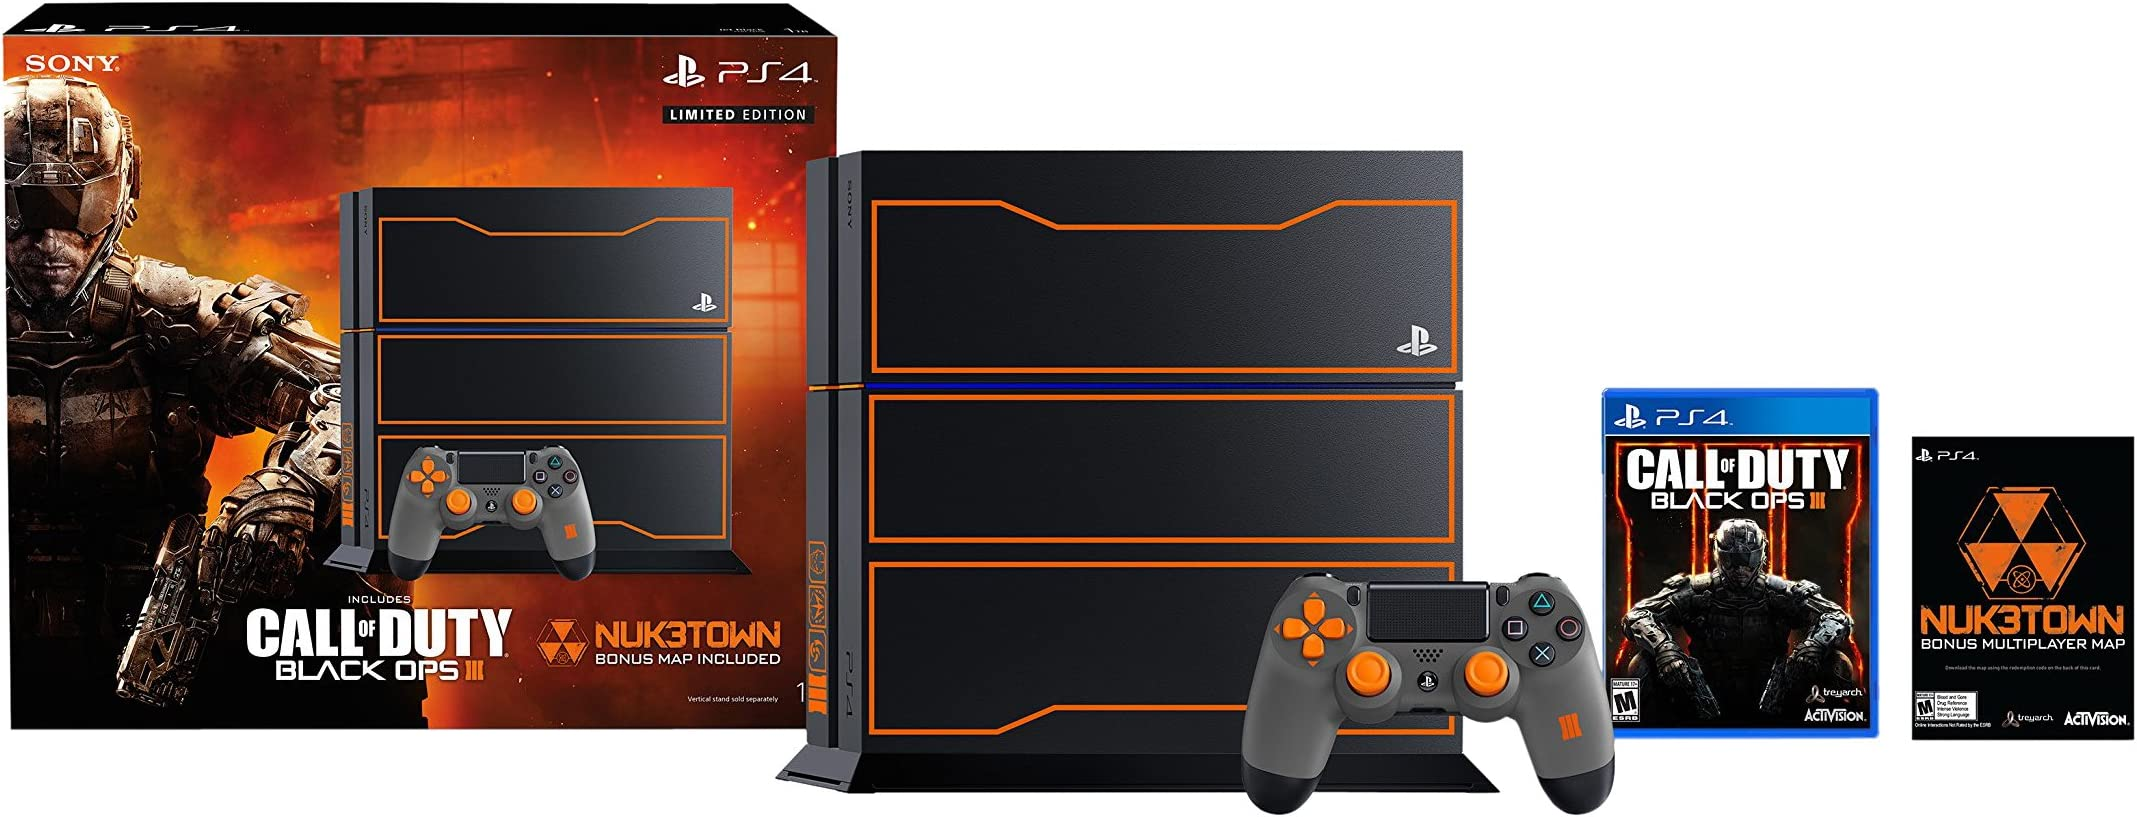 Amazoncom Playstation 4 1tb Console Call Of Duty Black Ops 3